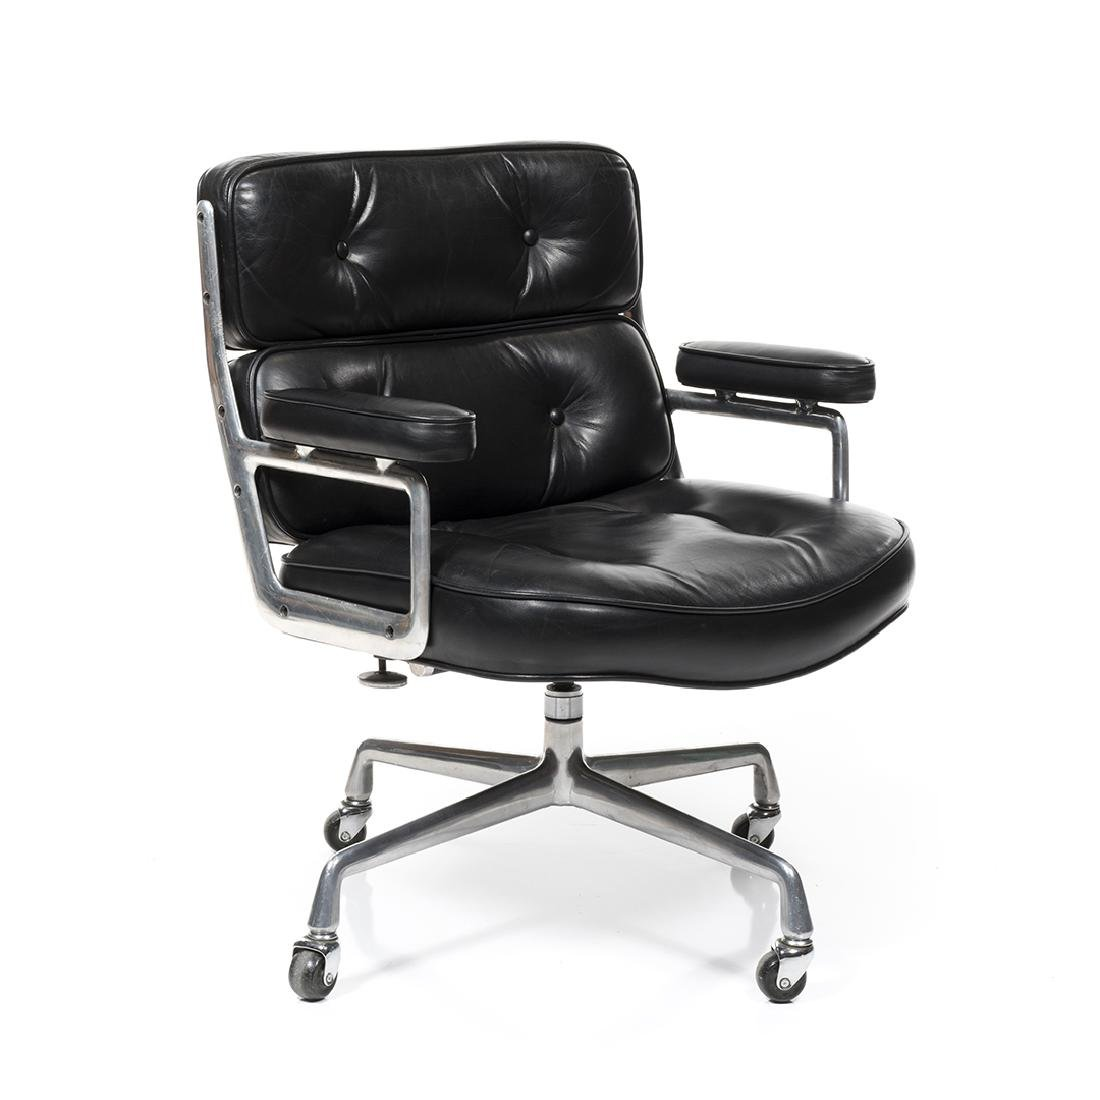 Charles Eames Time-Life Lobby Chair